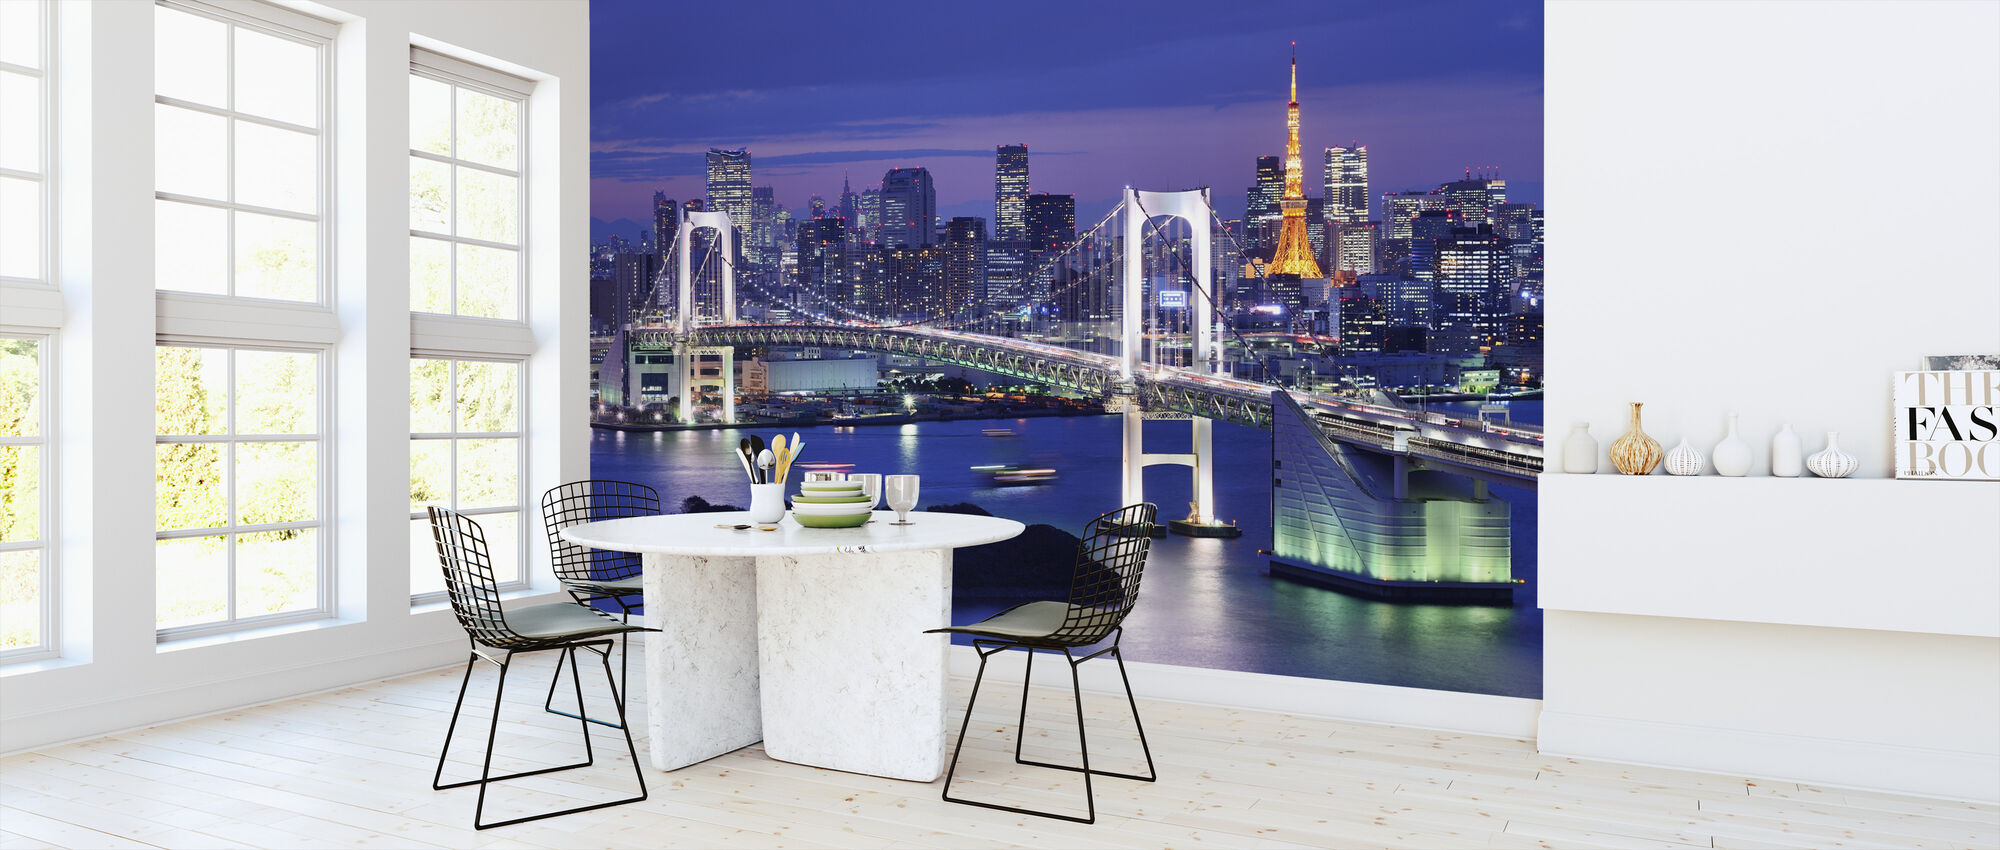 Rainbow Bridge and Tokyo Tower - Wallpaper - Kitchen